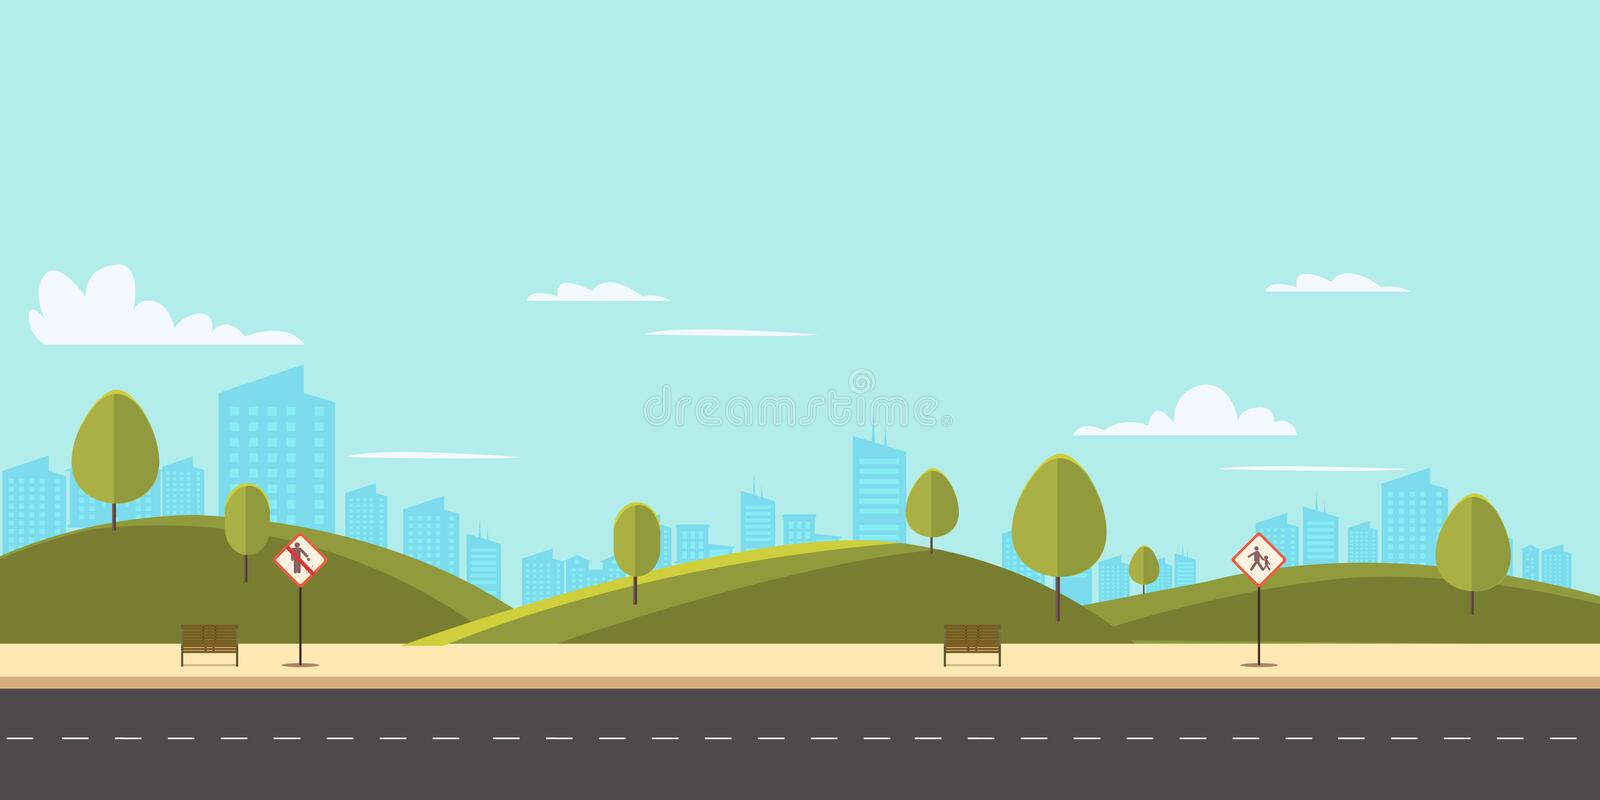 Street in public park with nature landscape and building stock illustration